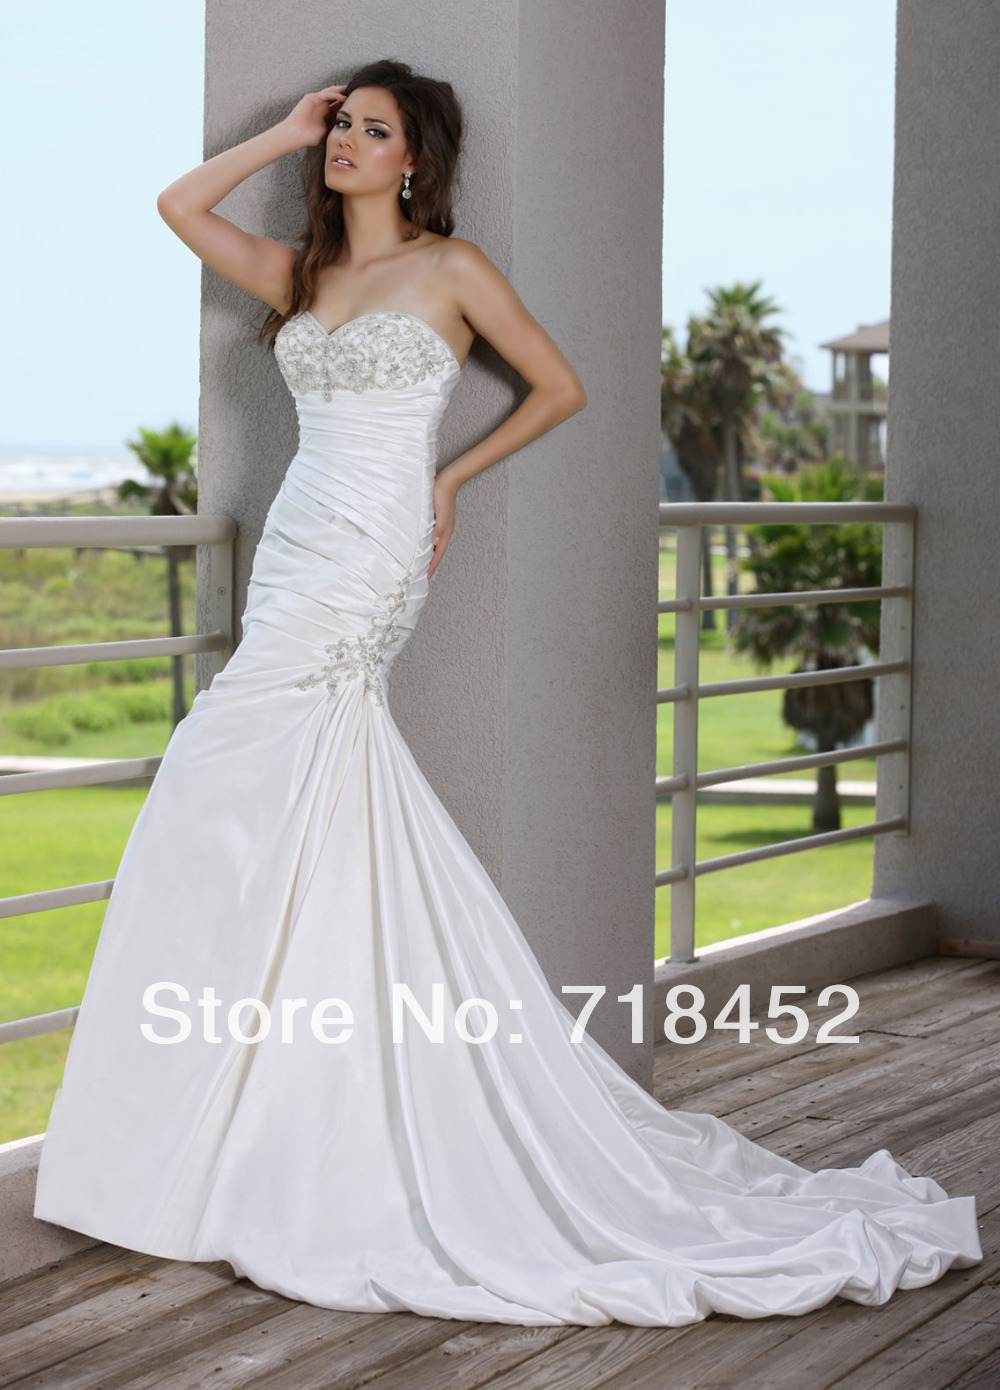 Lace Mermaid Wedding Dress Ireland : Buy wholesale irish wedding dress from china